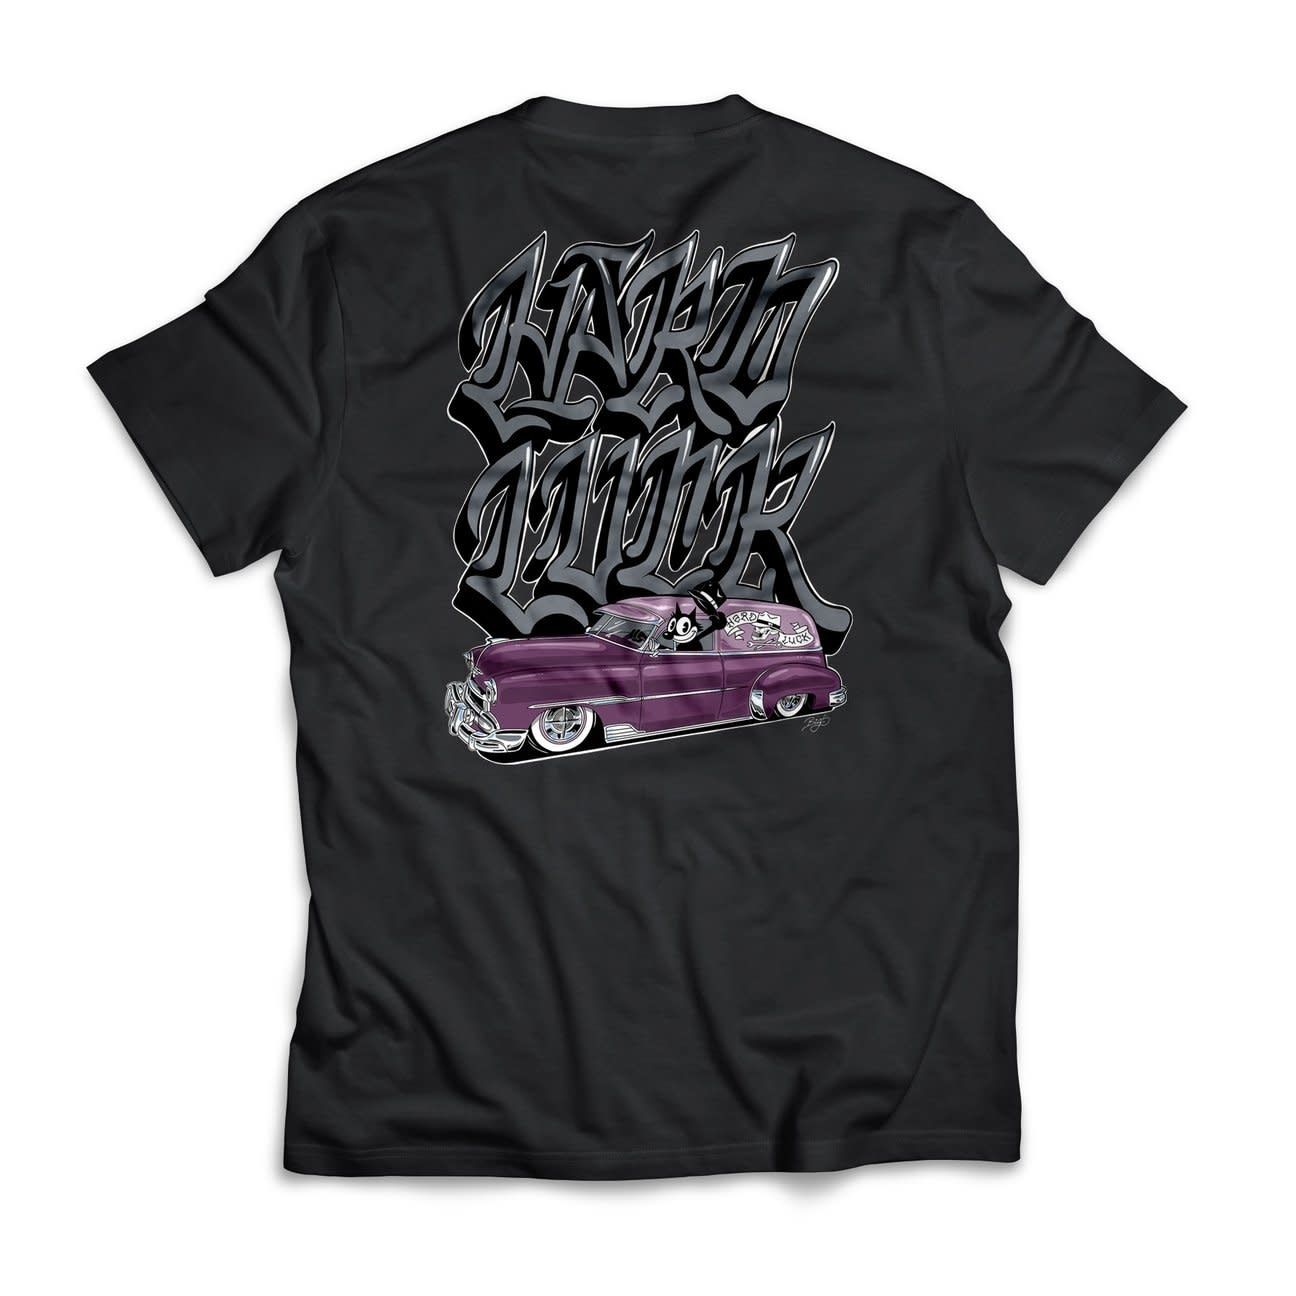 Hard Luck Mfg. Special Delivery Black Tee